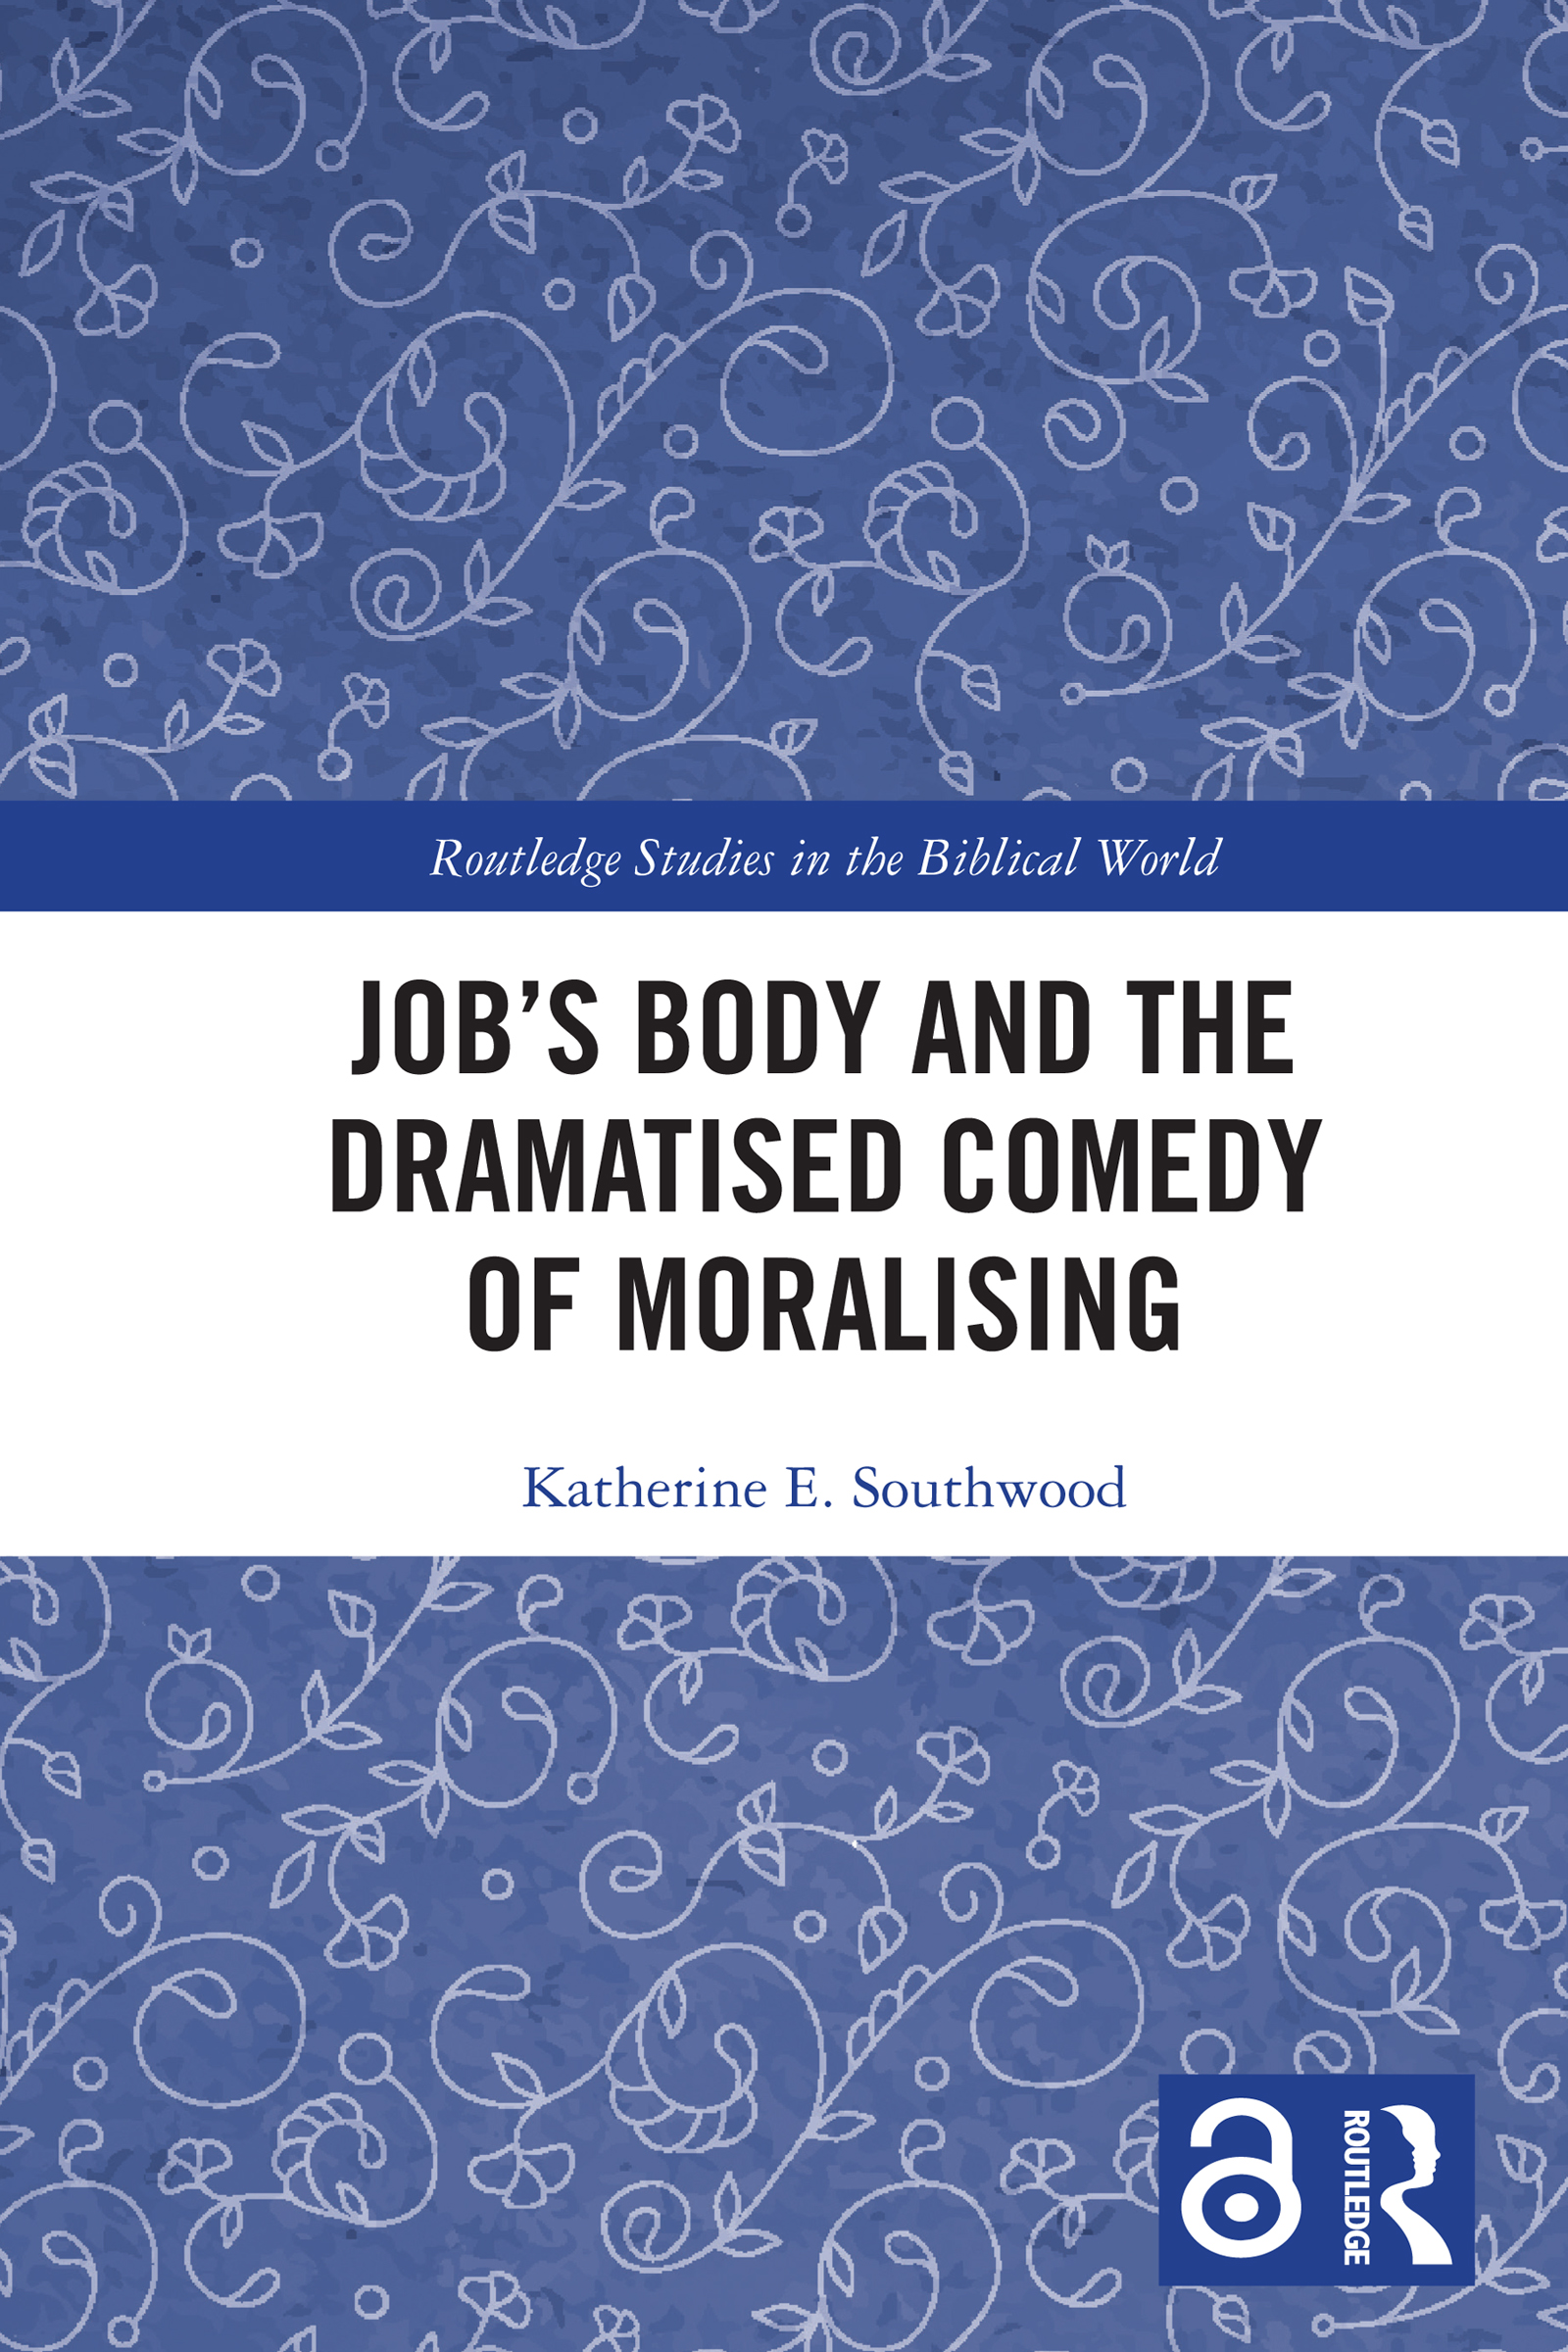 Job's Body and the Dramatised Comedy of Moralising